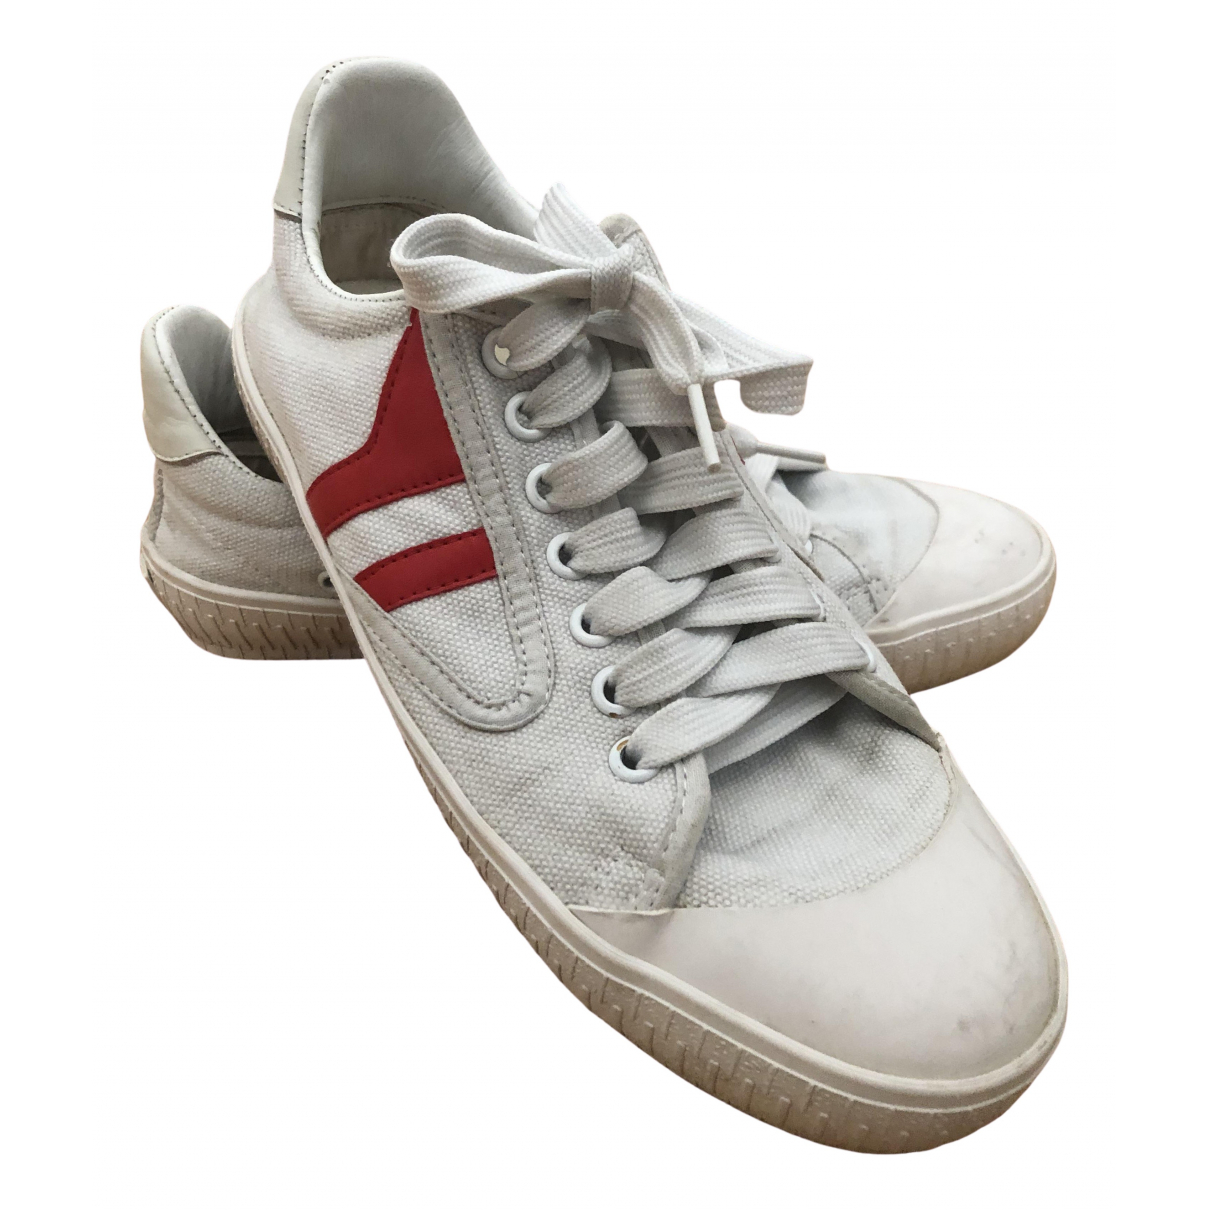 Celine Triomphe White Cloth Trainers for Women 38 EU